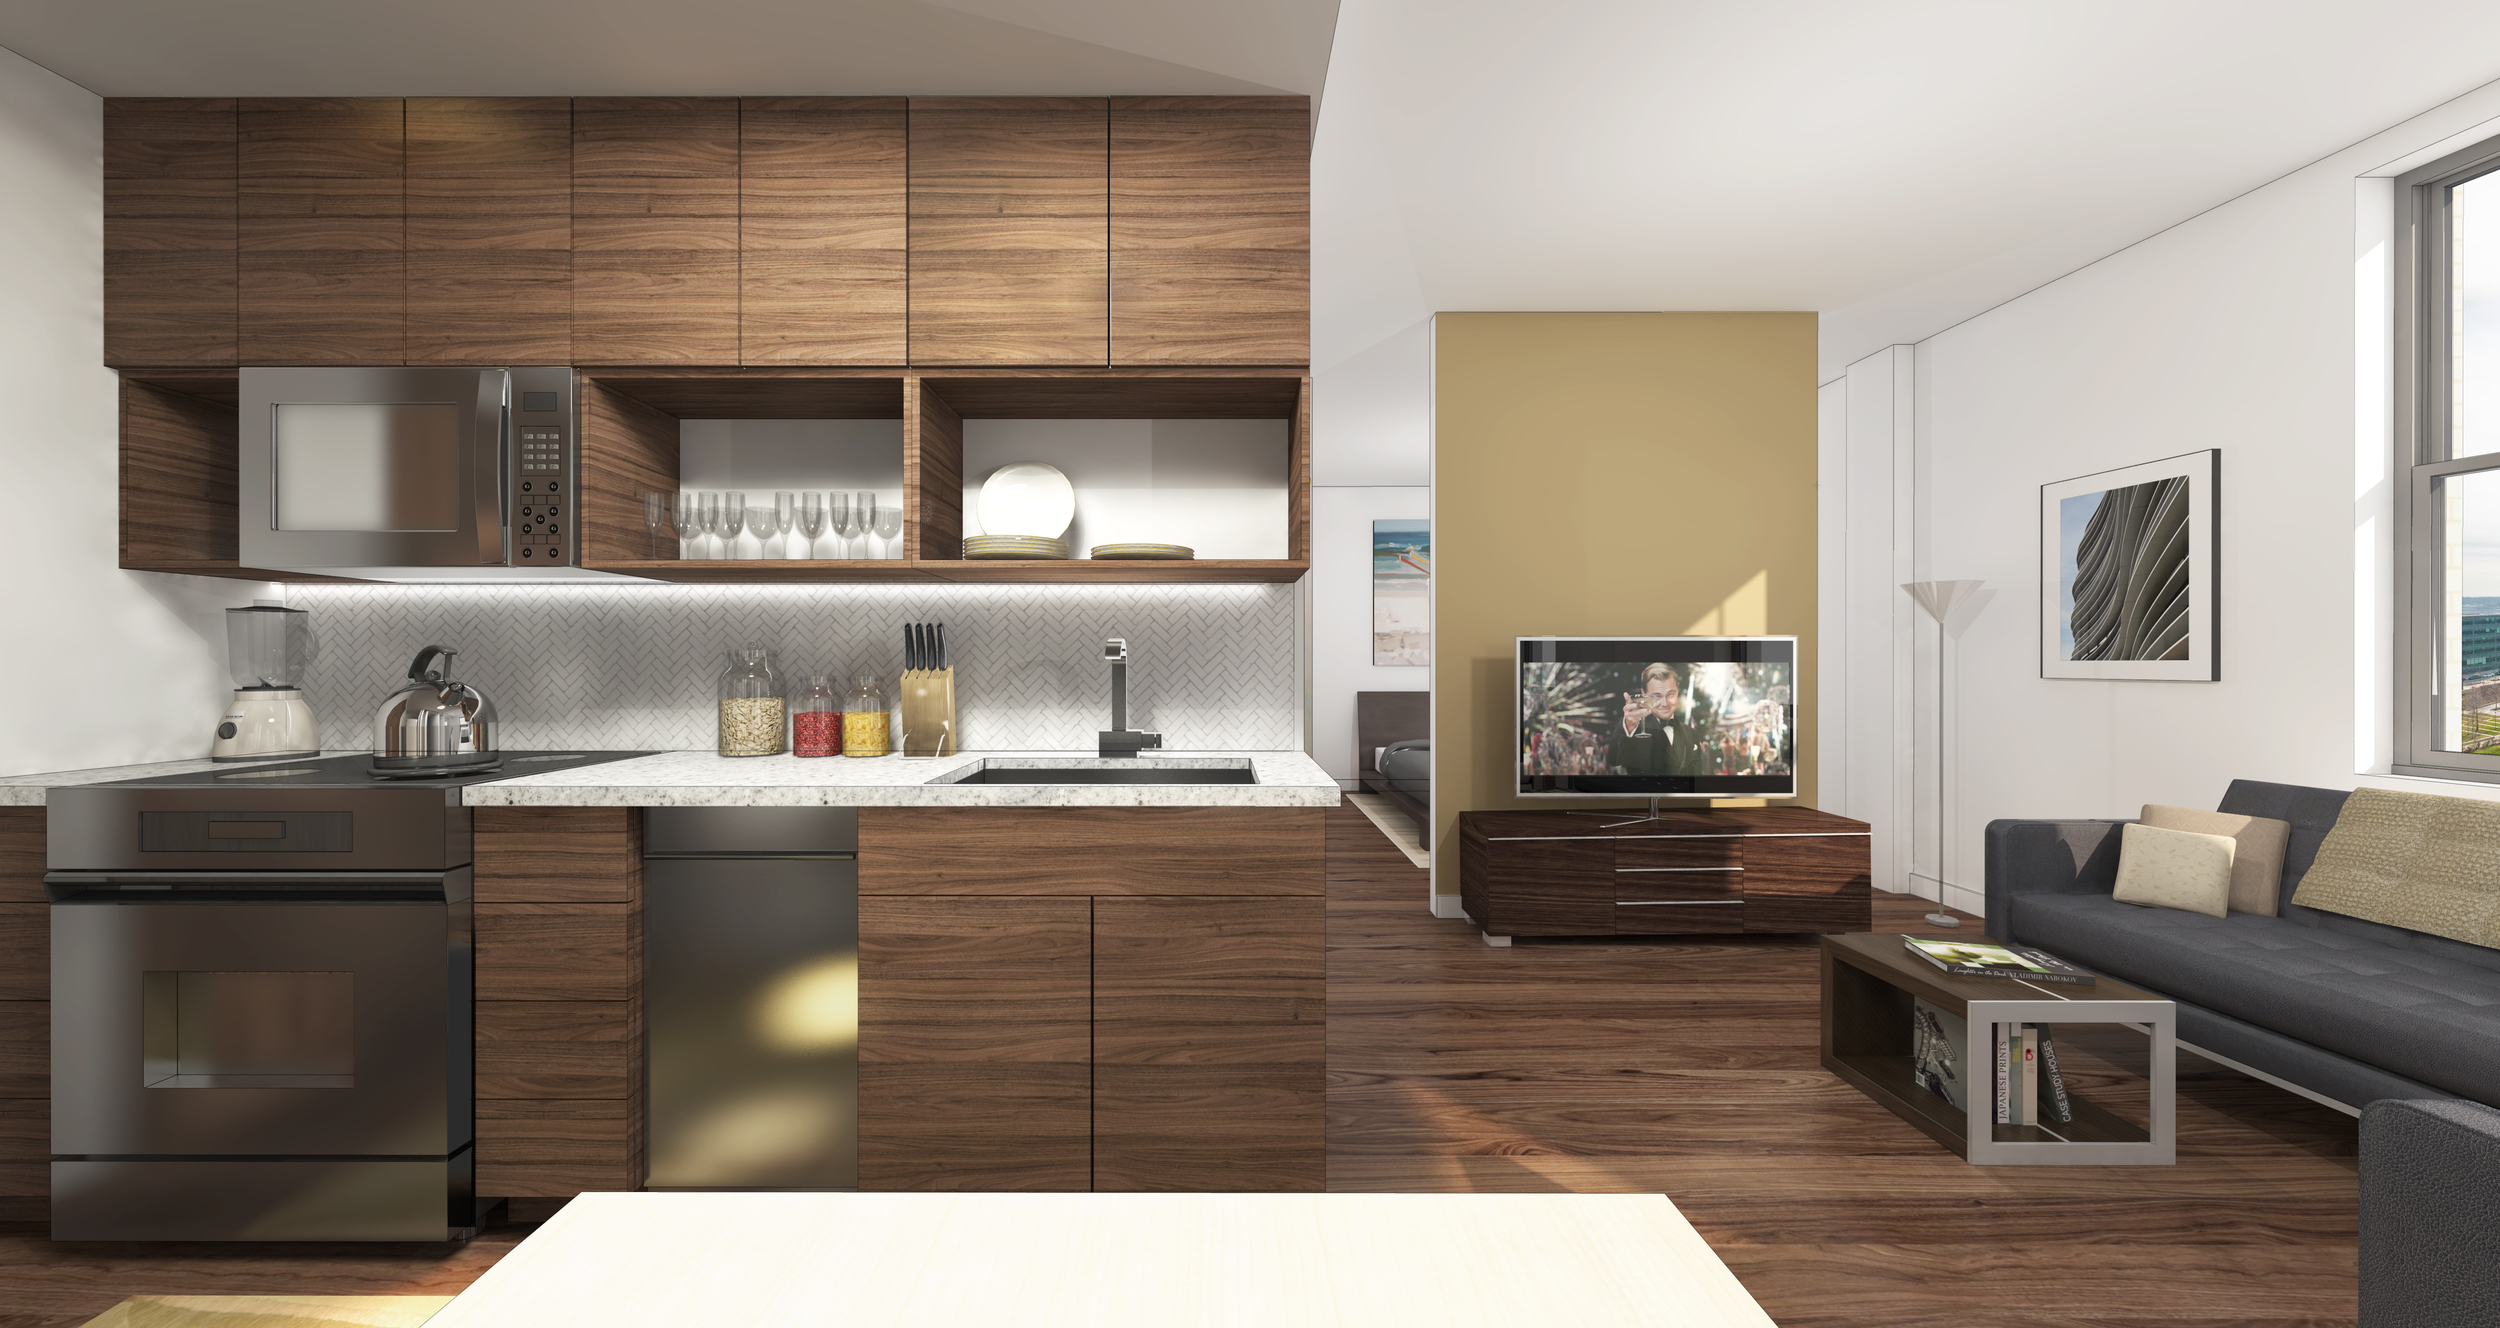 Units in the Pickwick range from 350 to 1,000 square feet. Pictured above: a flex unit, priced between $895 and $1,200.